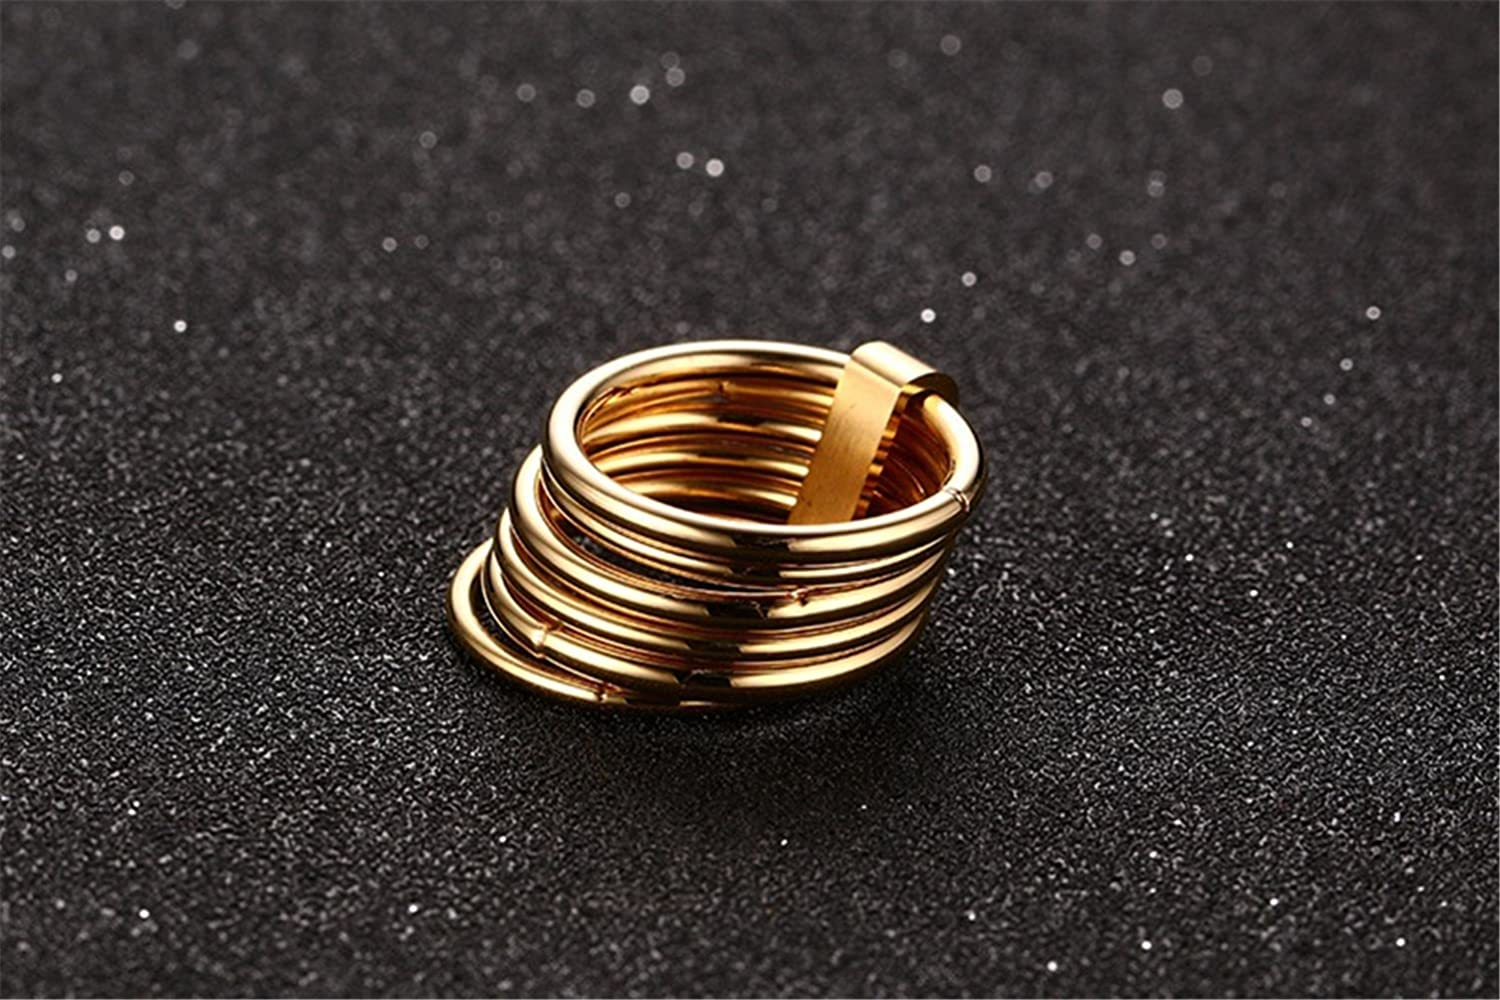 Womens Fashion Creative Pave Jewelry 10mm Stainless Steel 18k Gold Plated Multiple Circles Cocktail Ring Comfort Fit